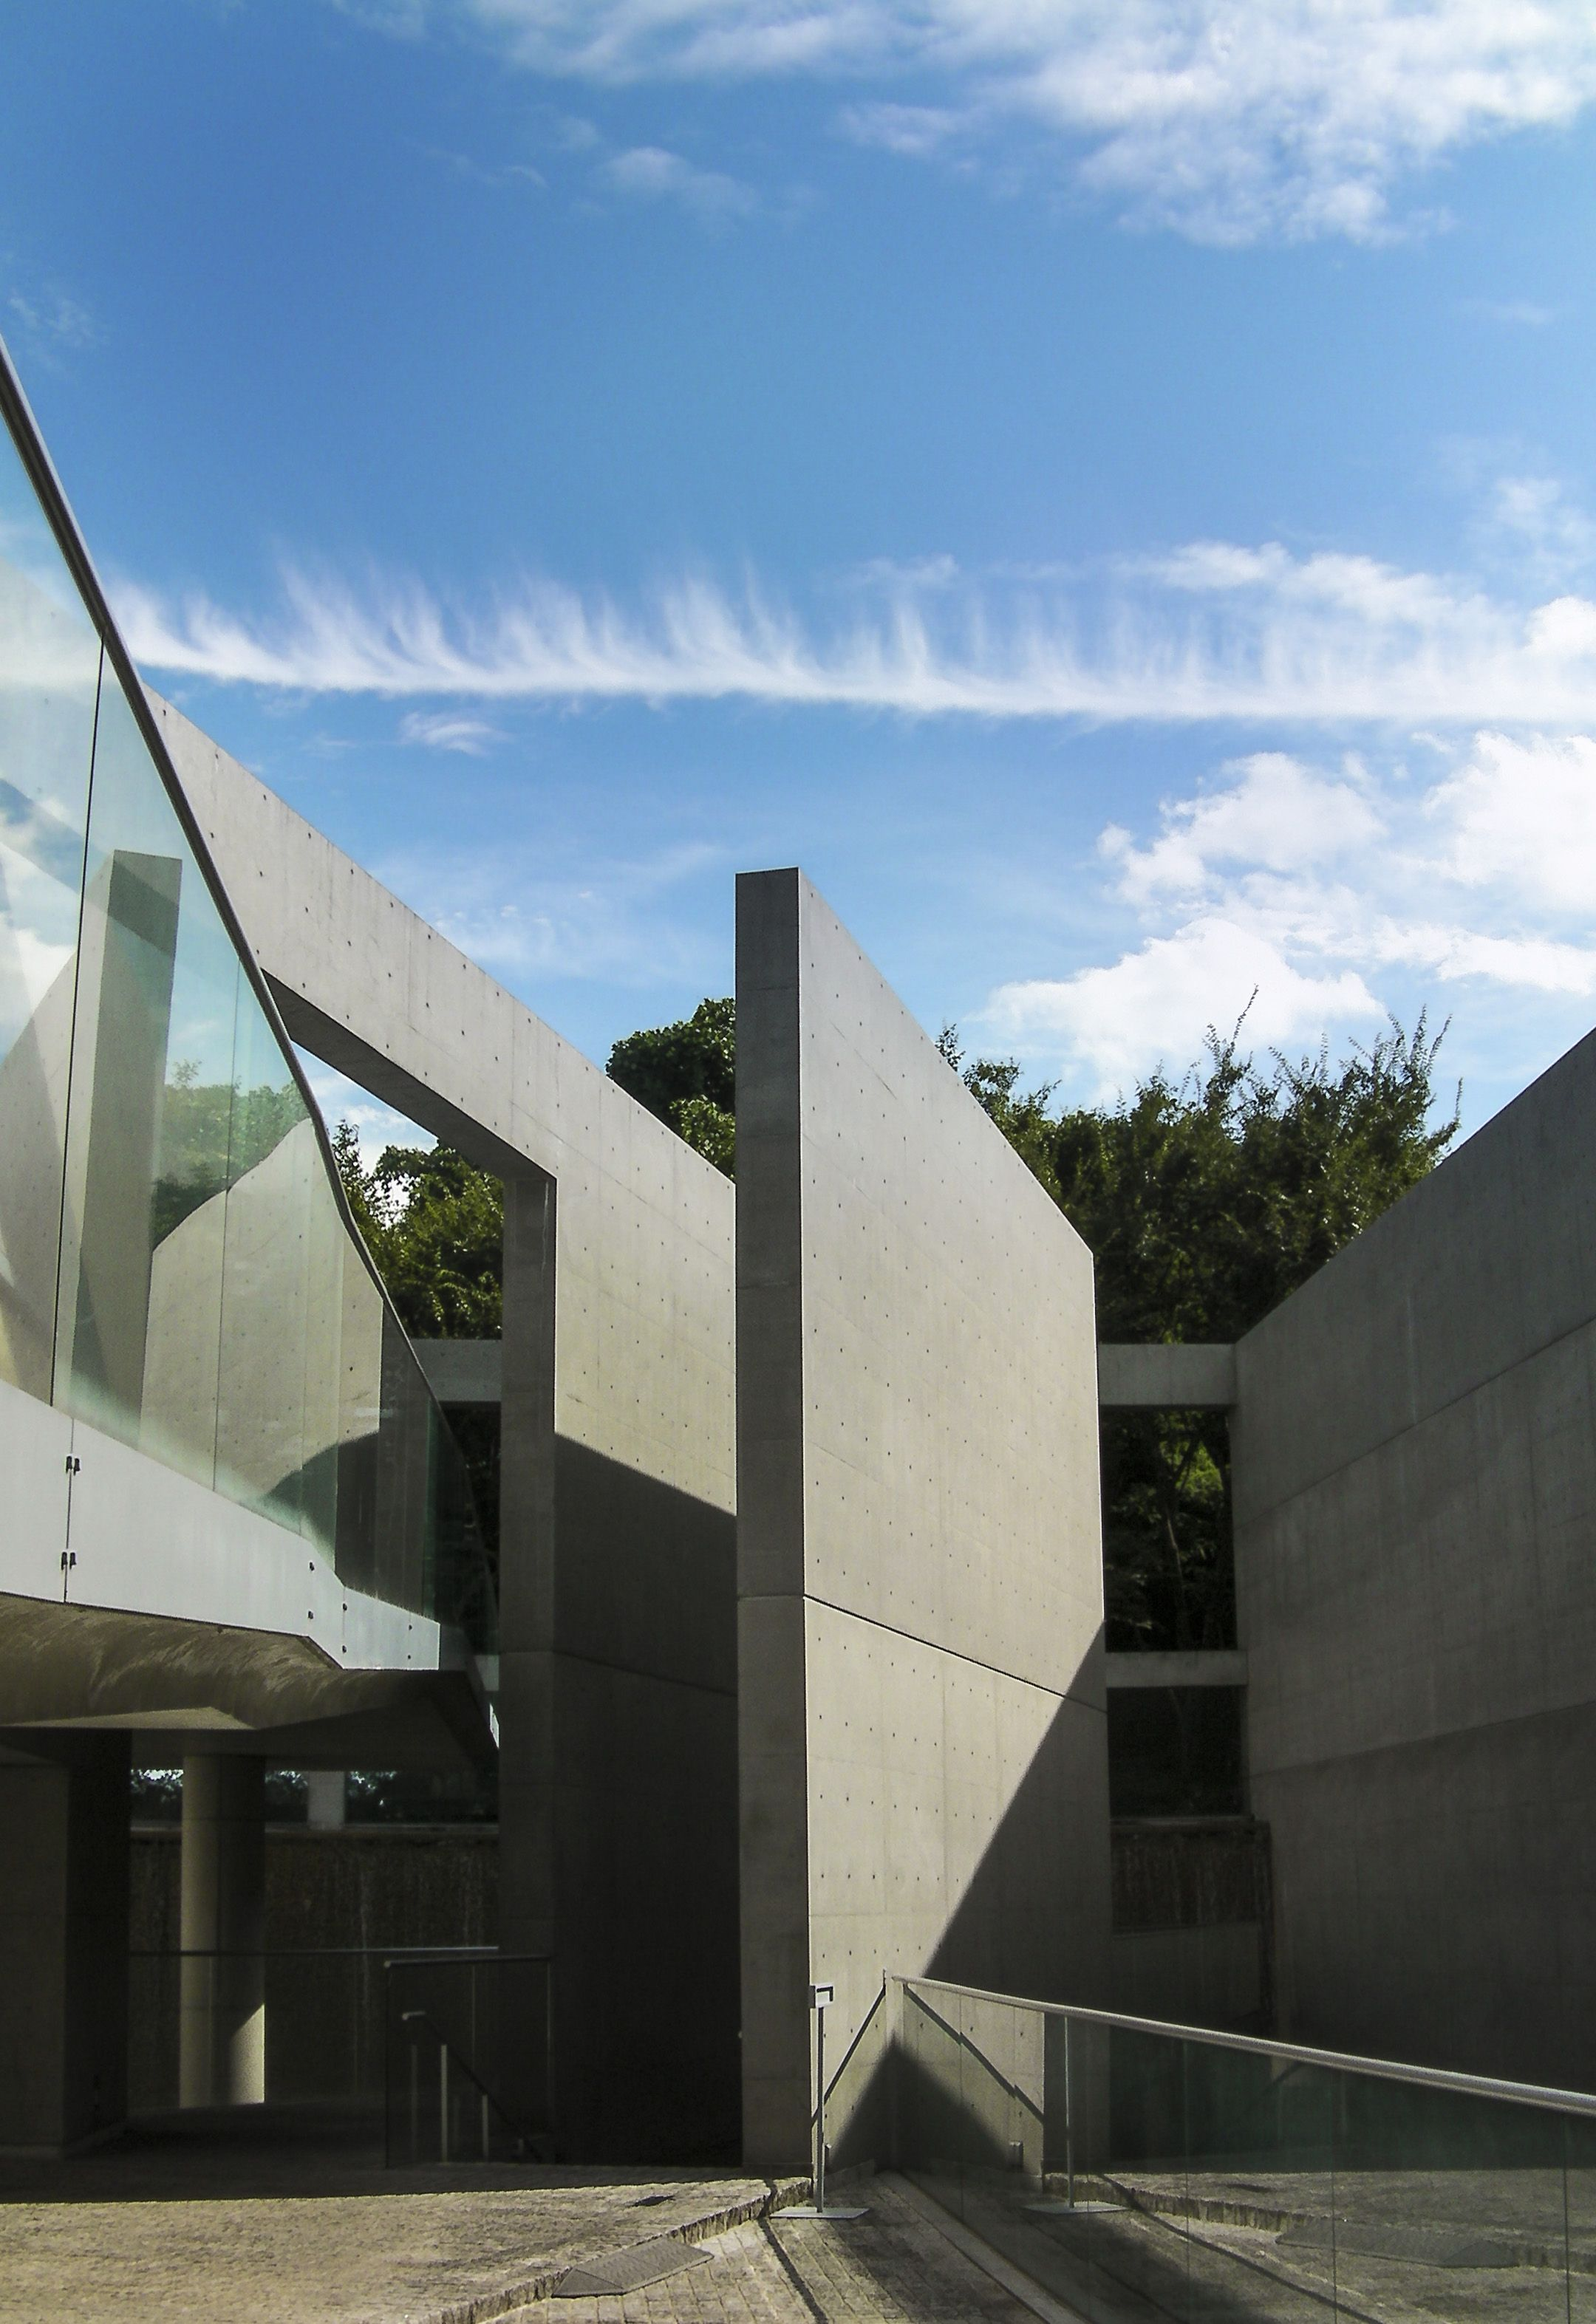 Ando tadao rokko house pinterest - 082008 The Tadao Ando S Kyoto Garden Of Fine Arts By Ver Nica Velaz